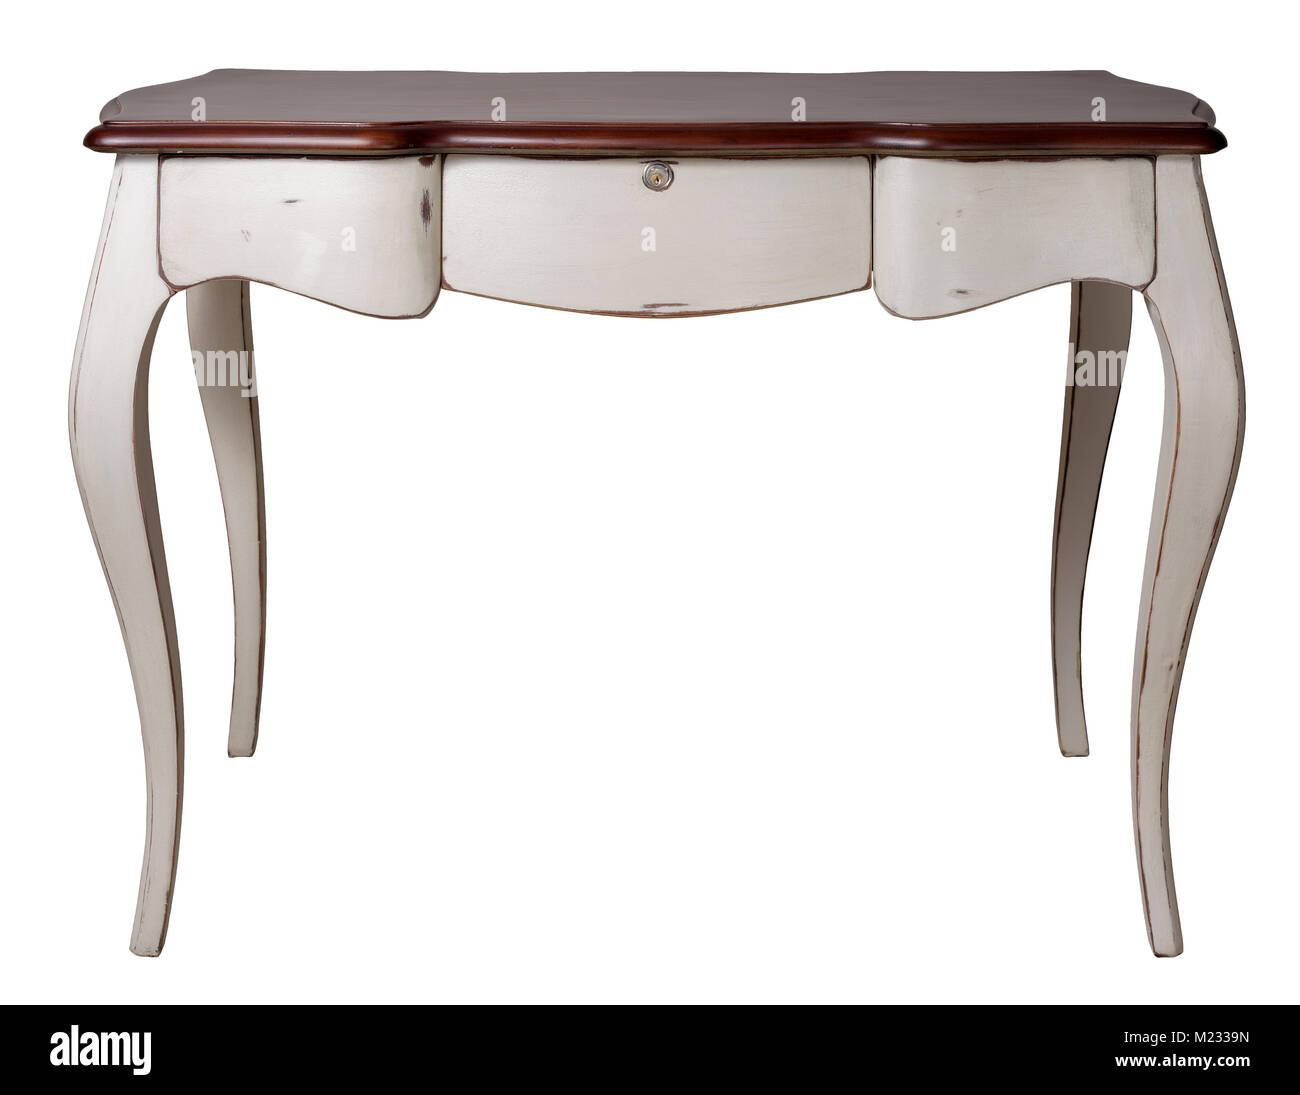 Vintage Furniture - Retro wooden desk table with white legs and three drawers isolated on white background including - Stock Image